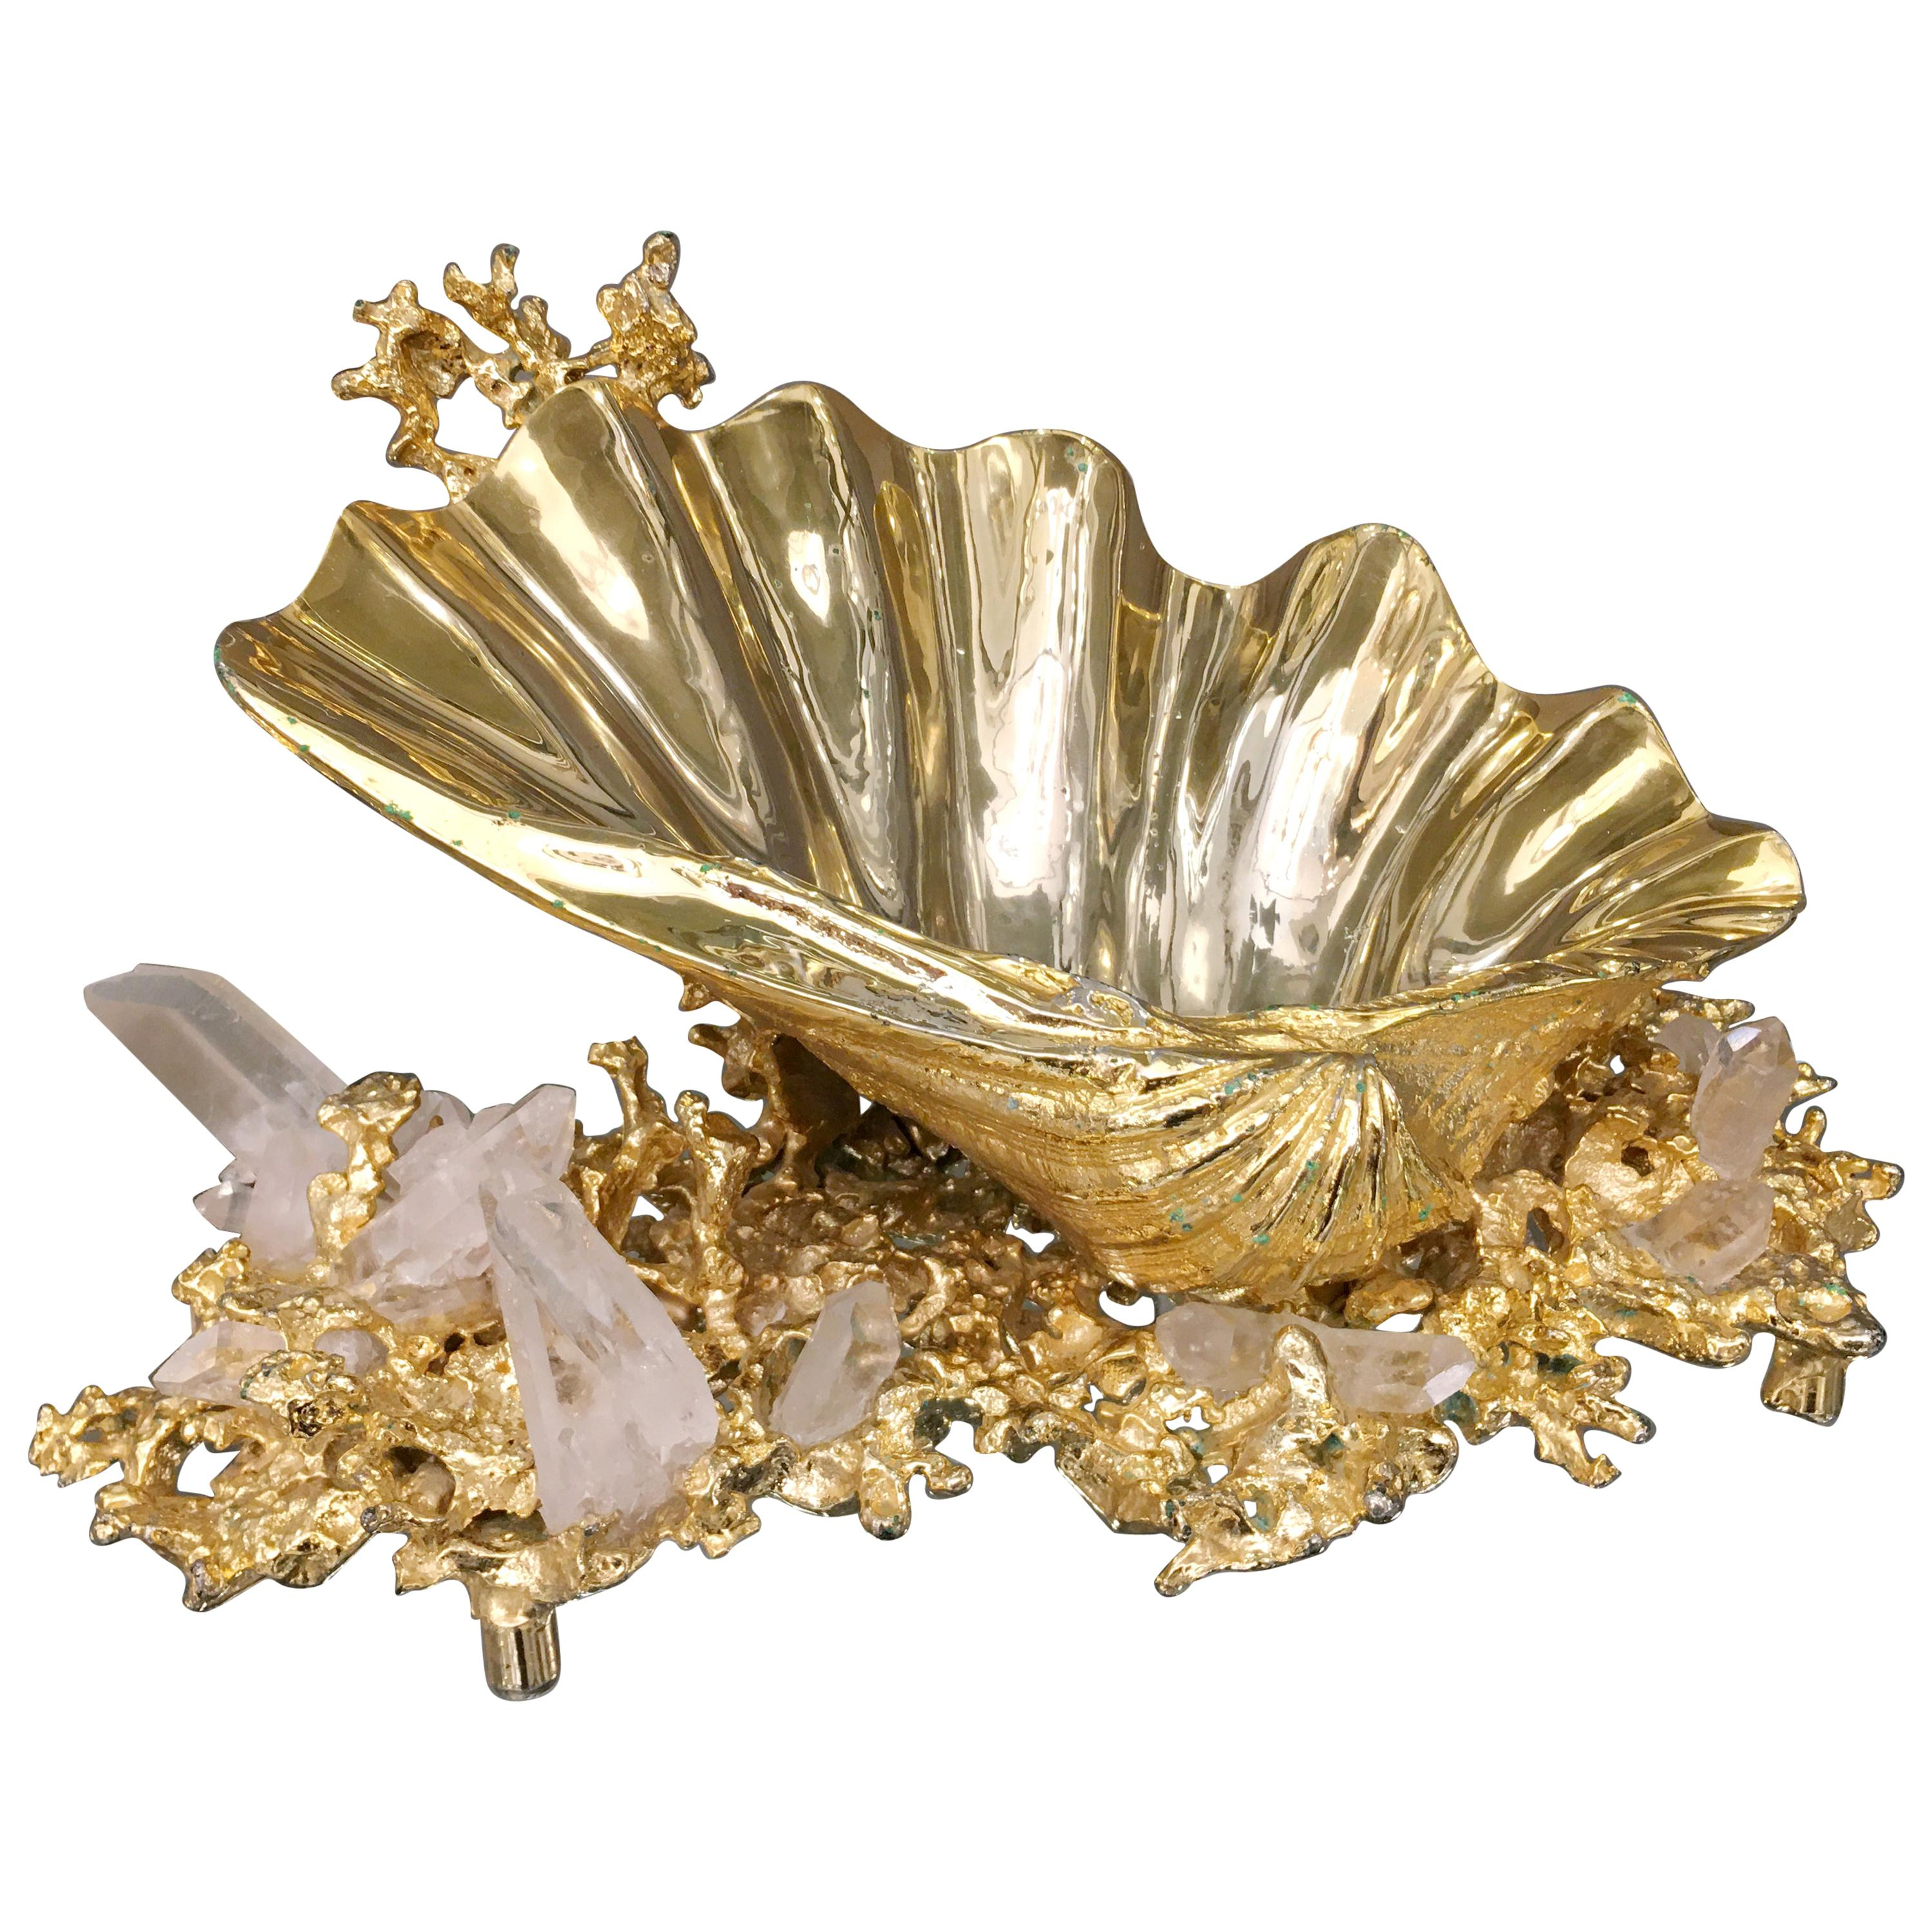 Centerpiece in Gilded Bronze and Rock Crystal, Claude Victor Boeltz France, 1970